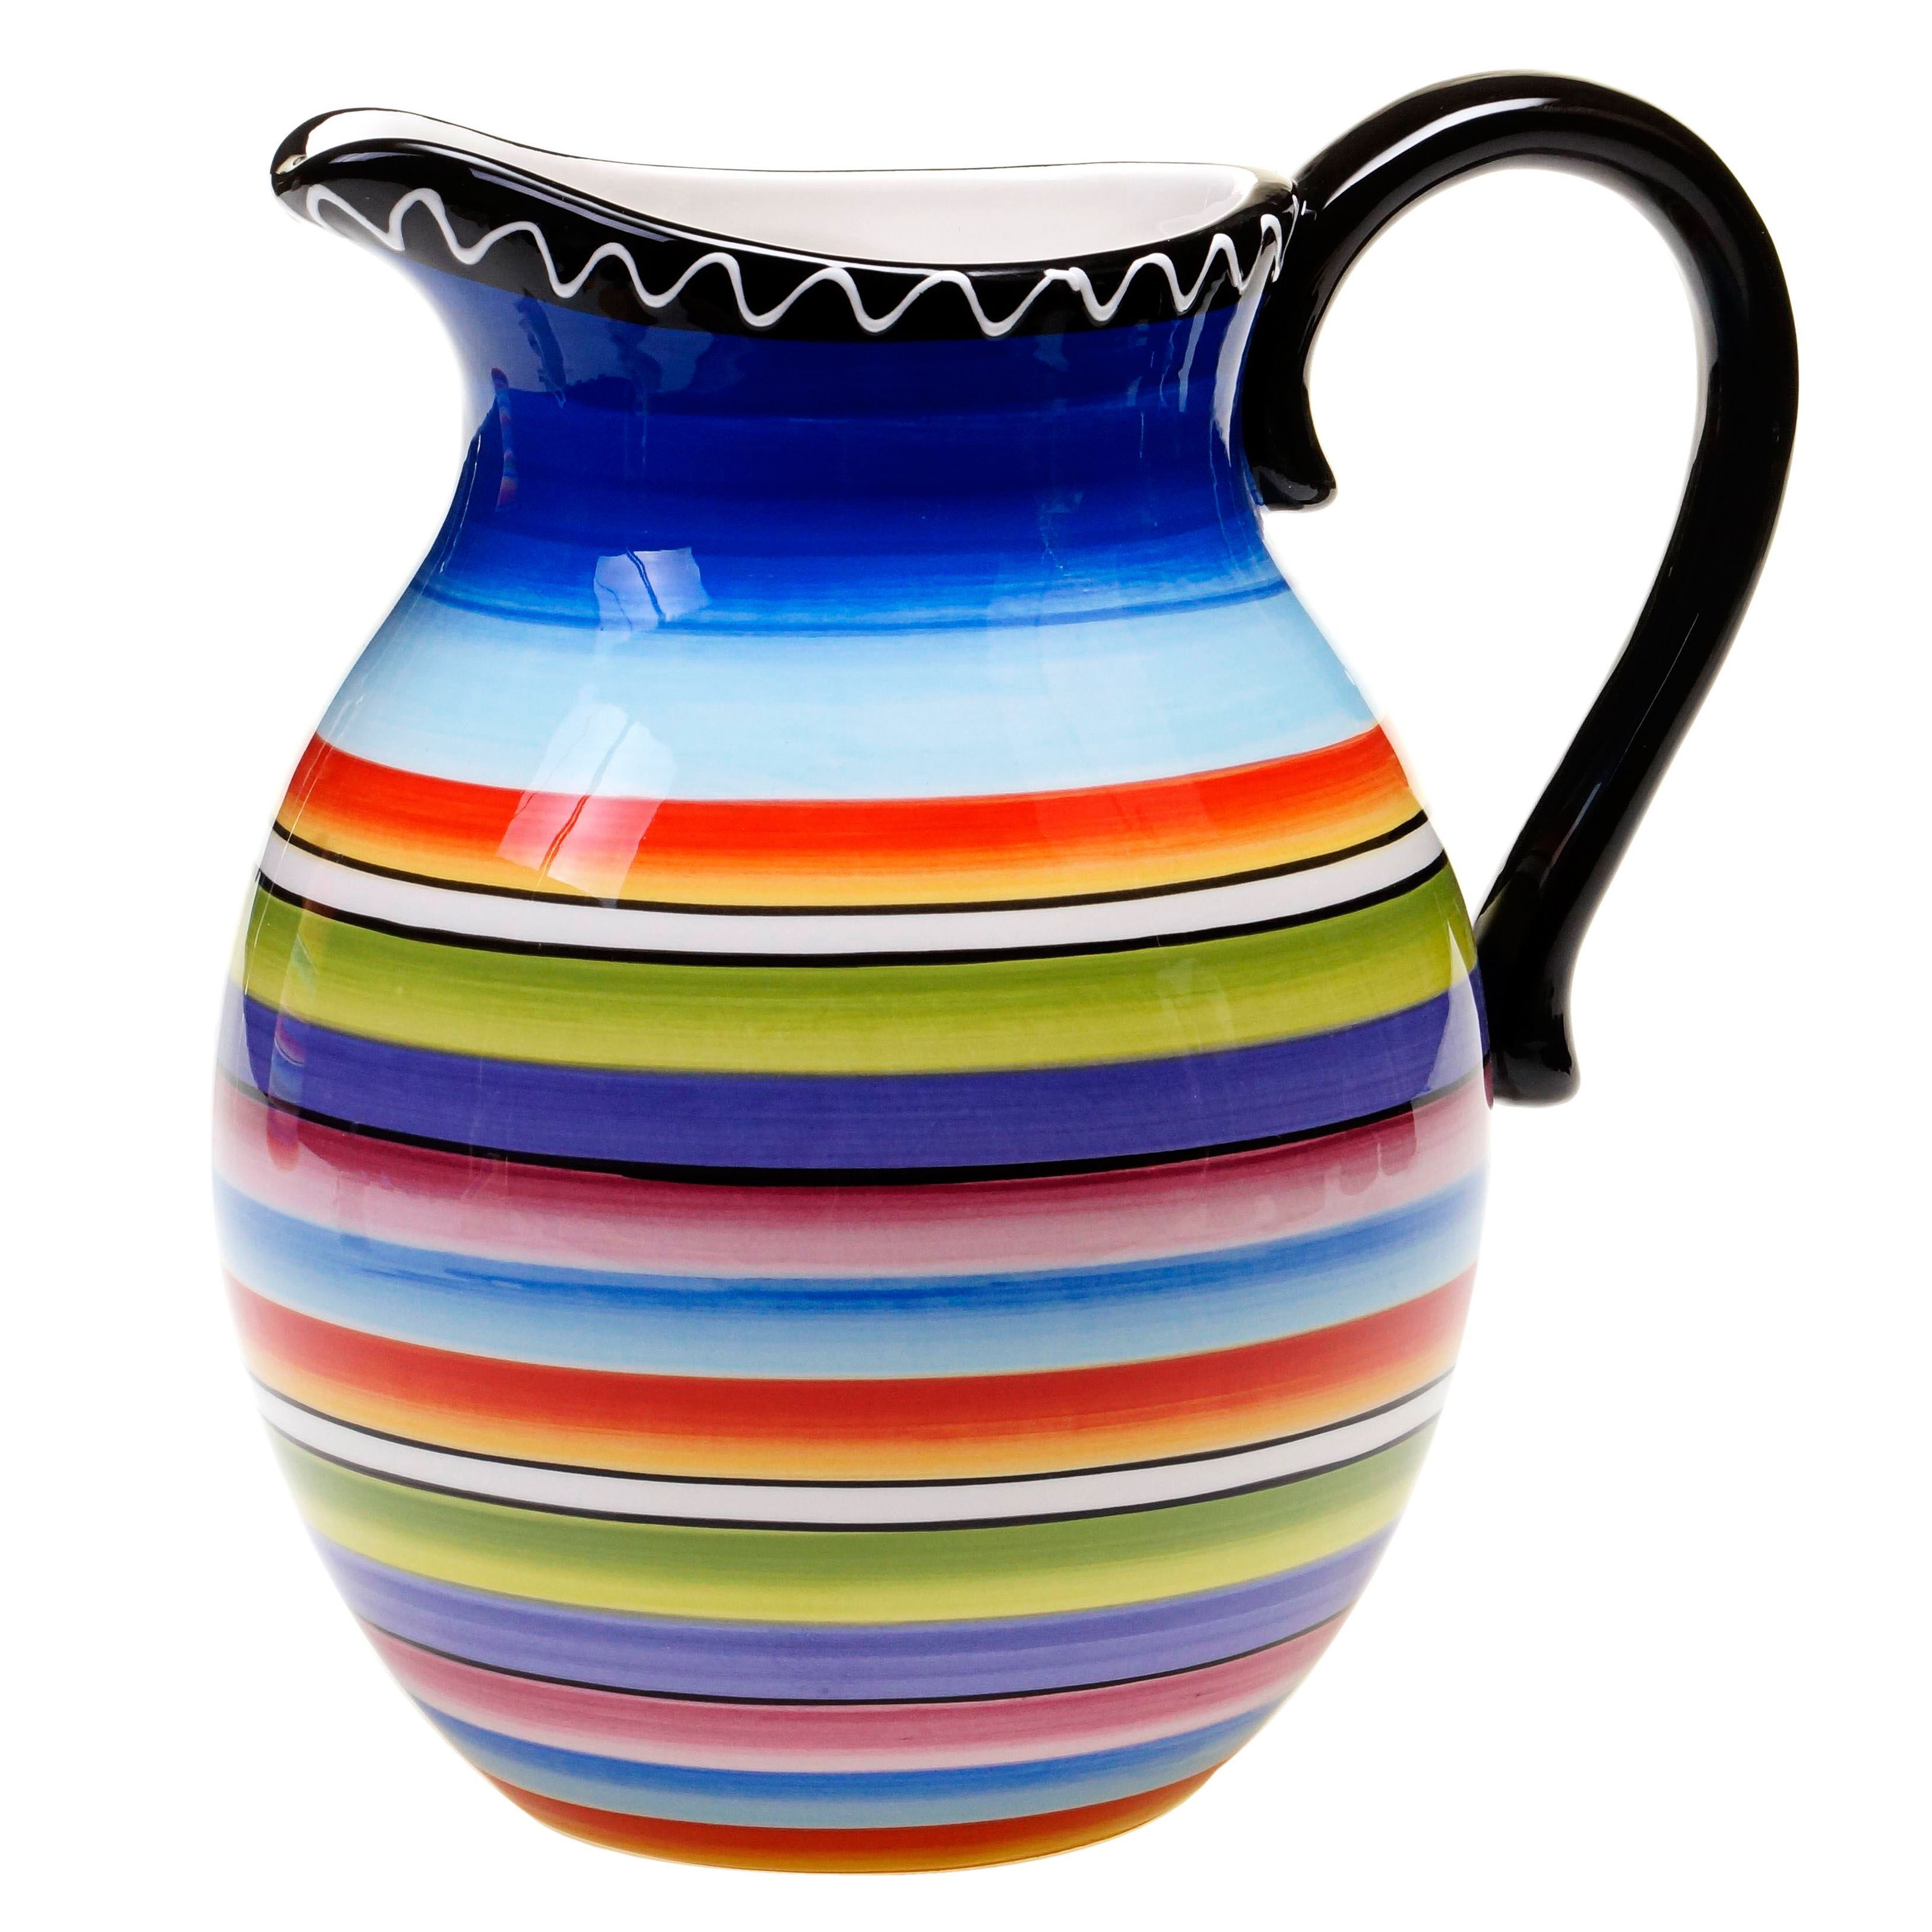 Pour drinks in style with the hand-painted Tequila Sunrise pitcher. Crafted with durable ceramic, this delightful pitcher is sure to be a wonderful piece in your dinnerware collection for years to come.